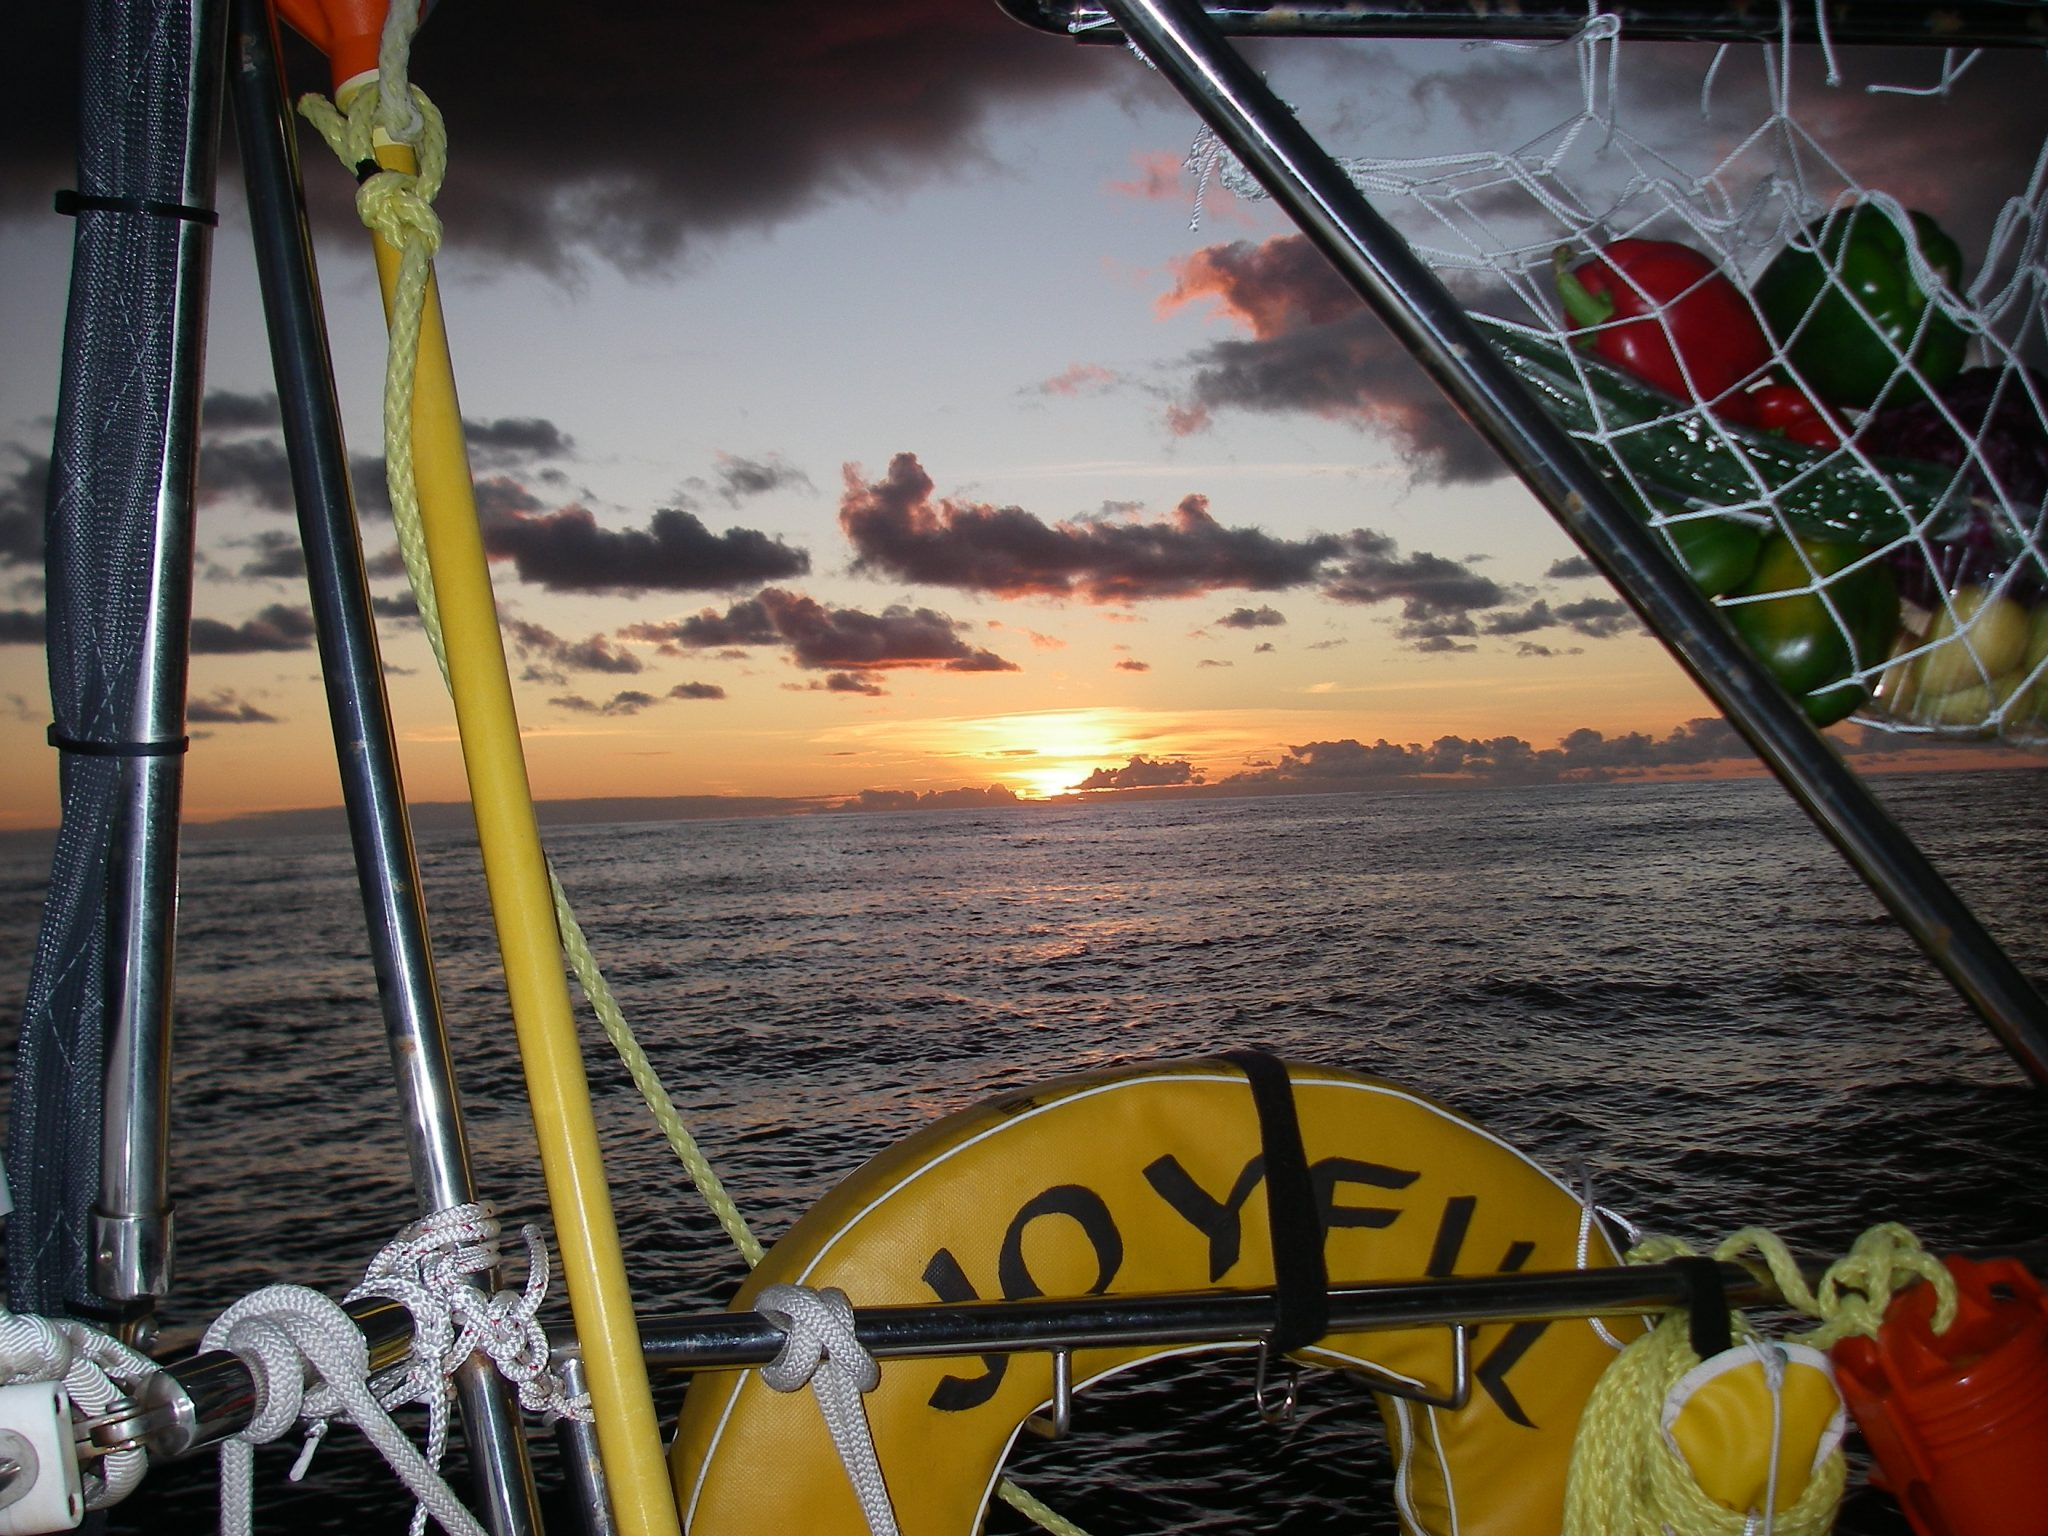 39. A joyful sunset on the Tasman Sea from Joyful's cockpit.